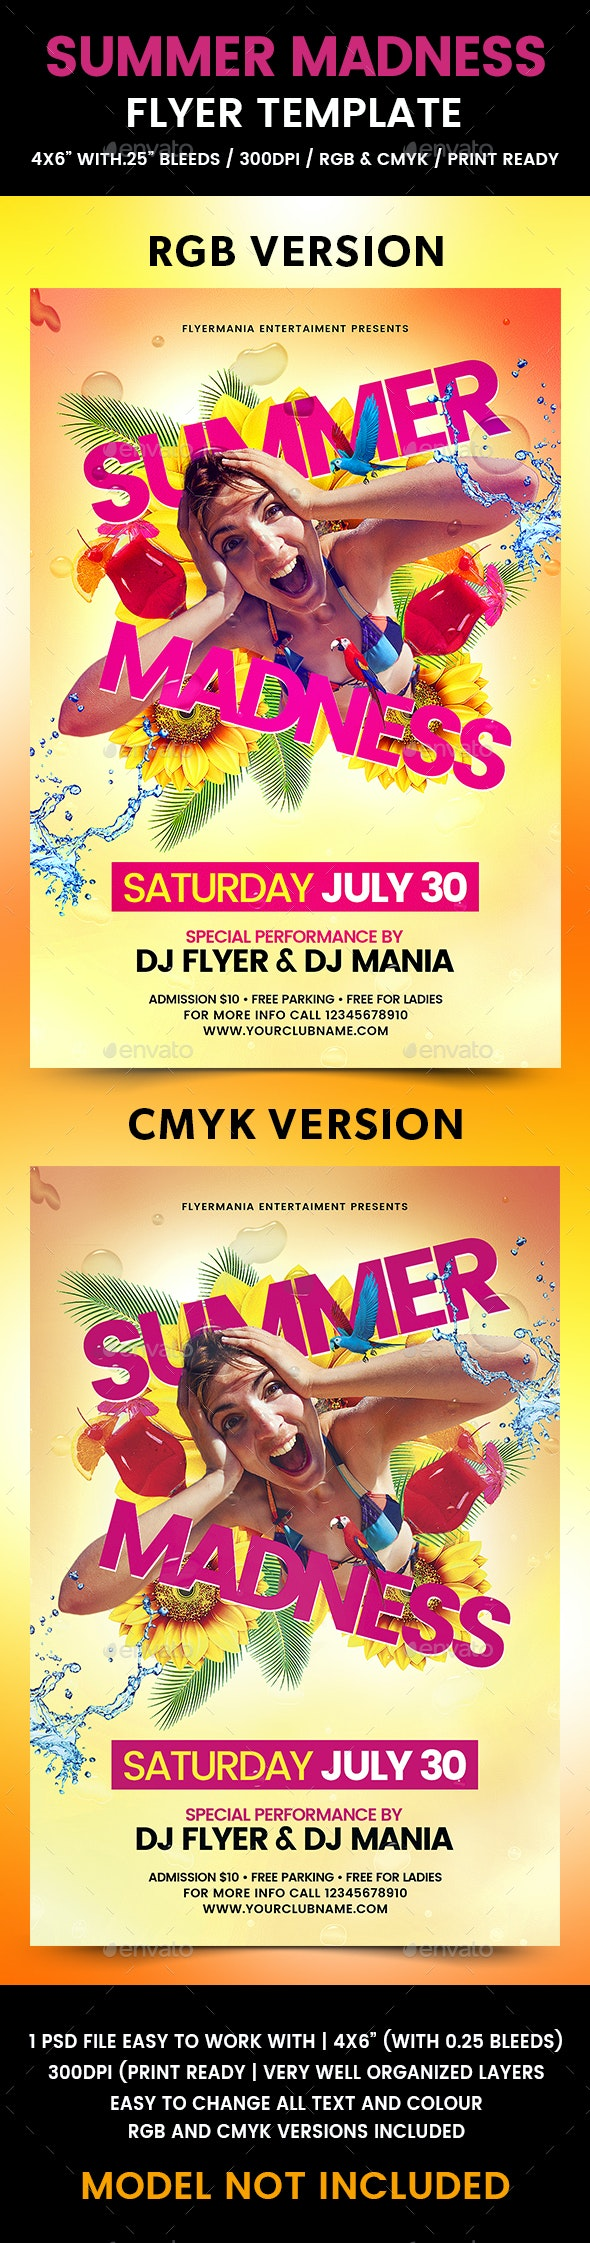 Summer Madness Flyer Template - Flyers Print Templates